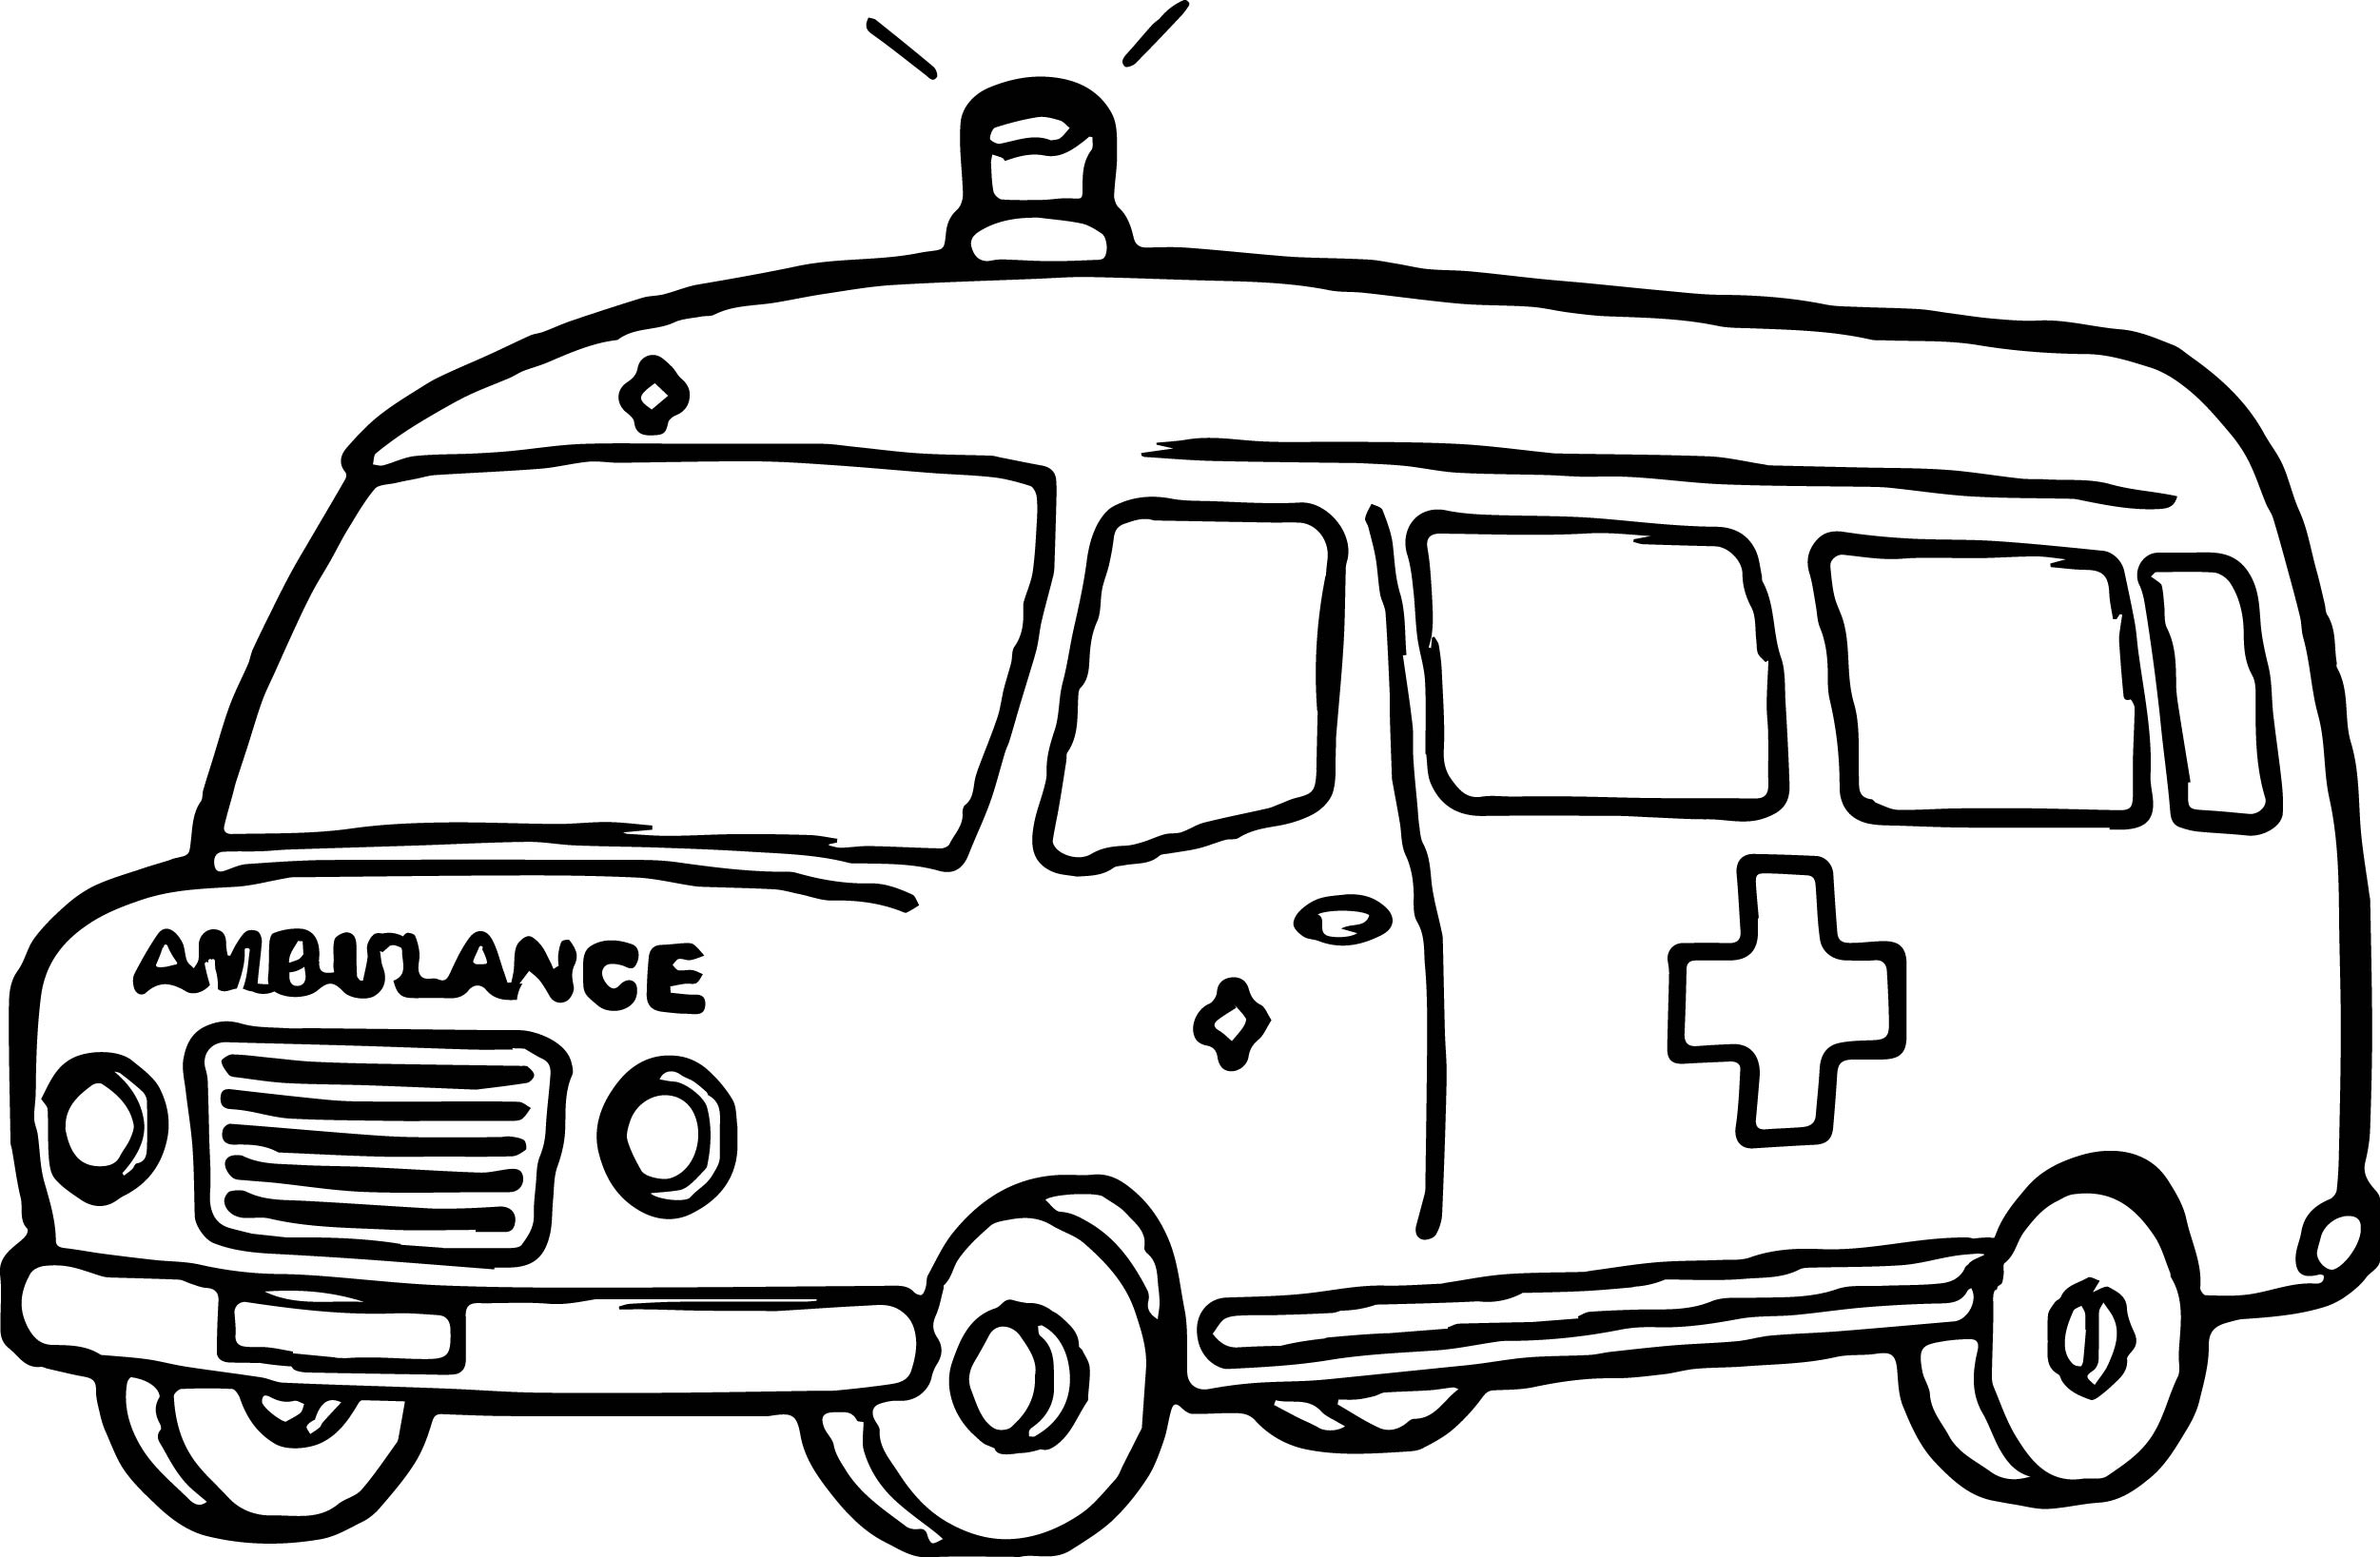 ambulance coloring page - Ambulance Coloring Pages Kids